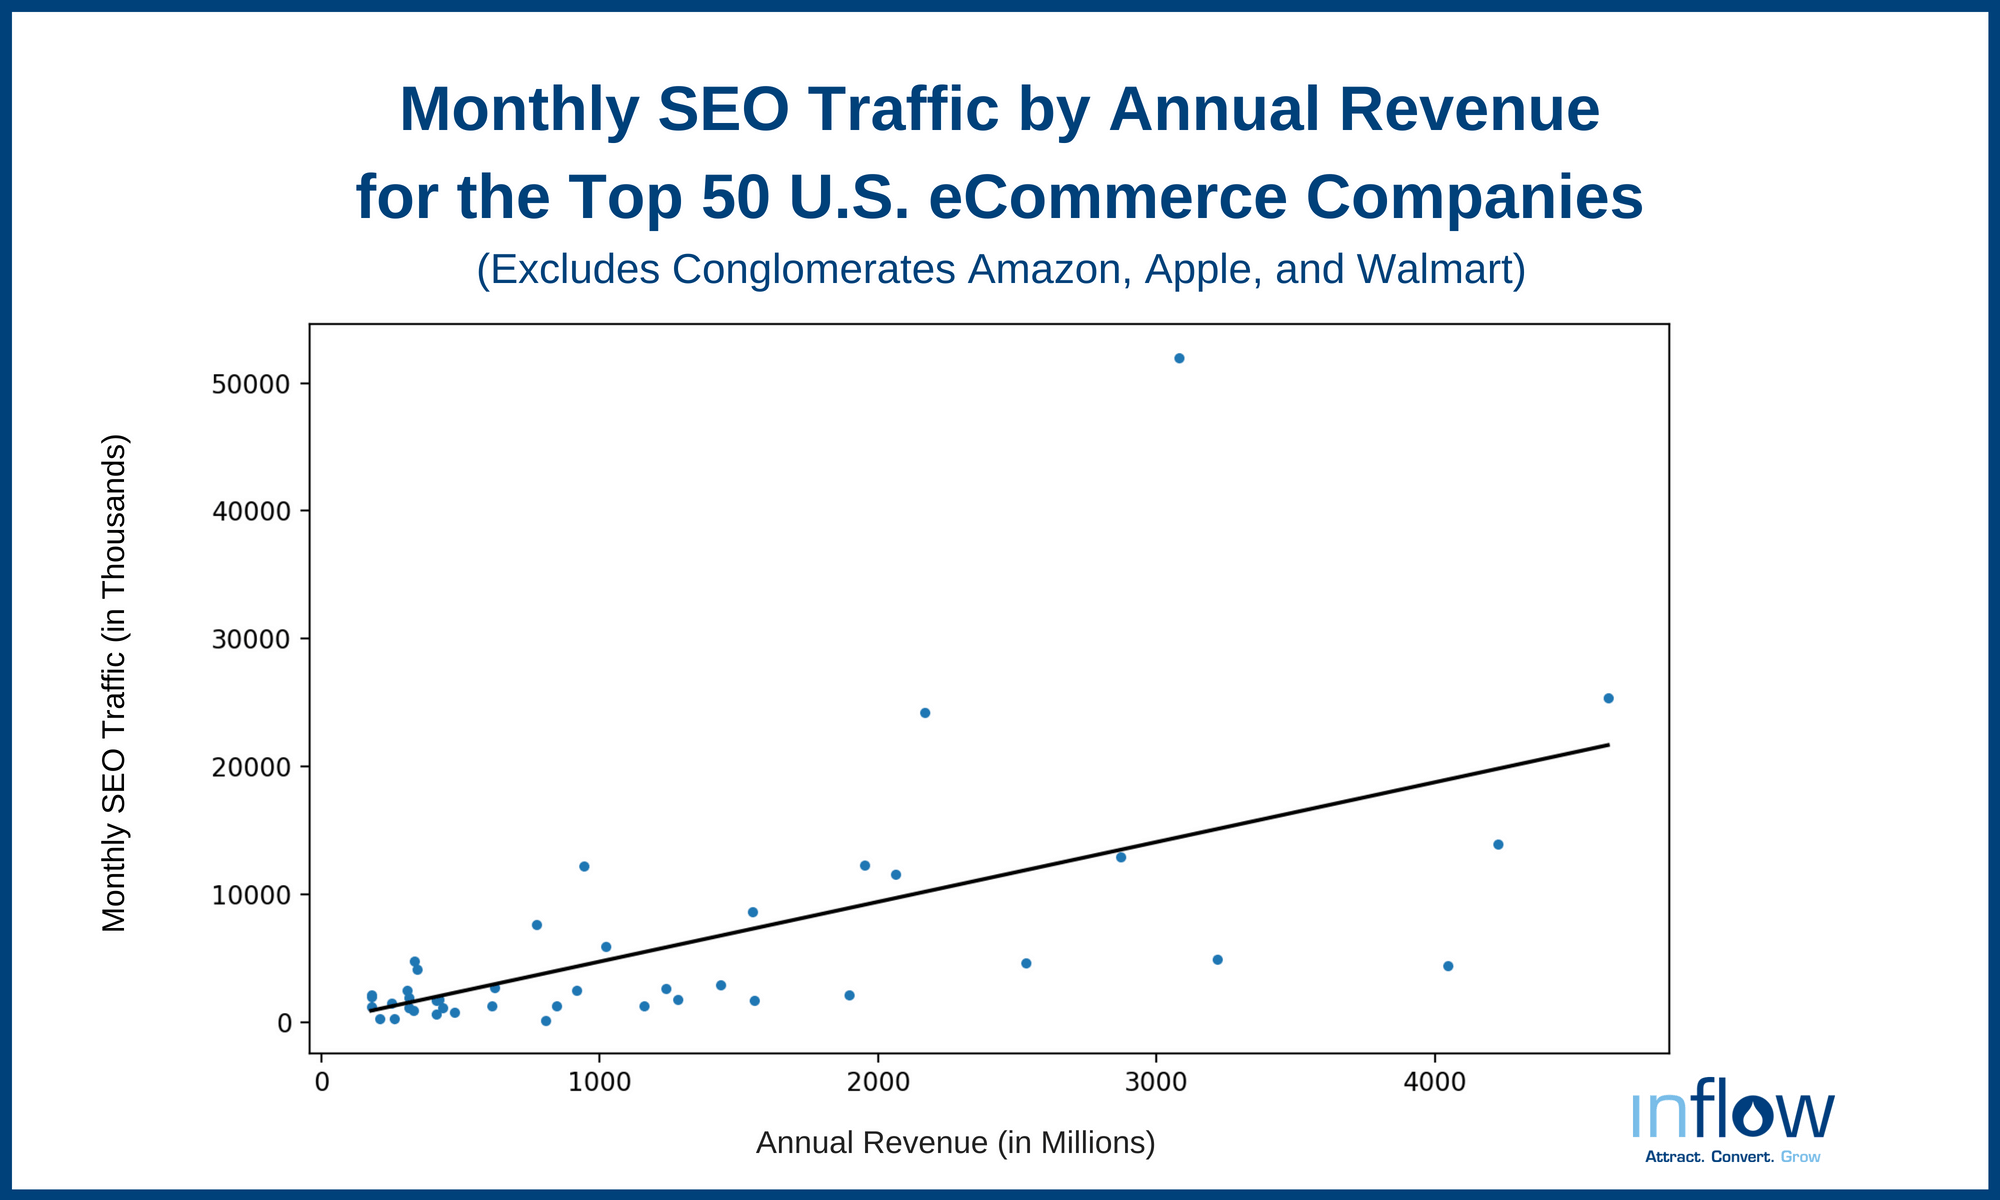 Monthly SEO Traffic by Annual Revenue for the Top 50 eCommerce Companies